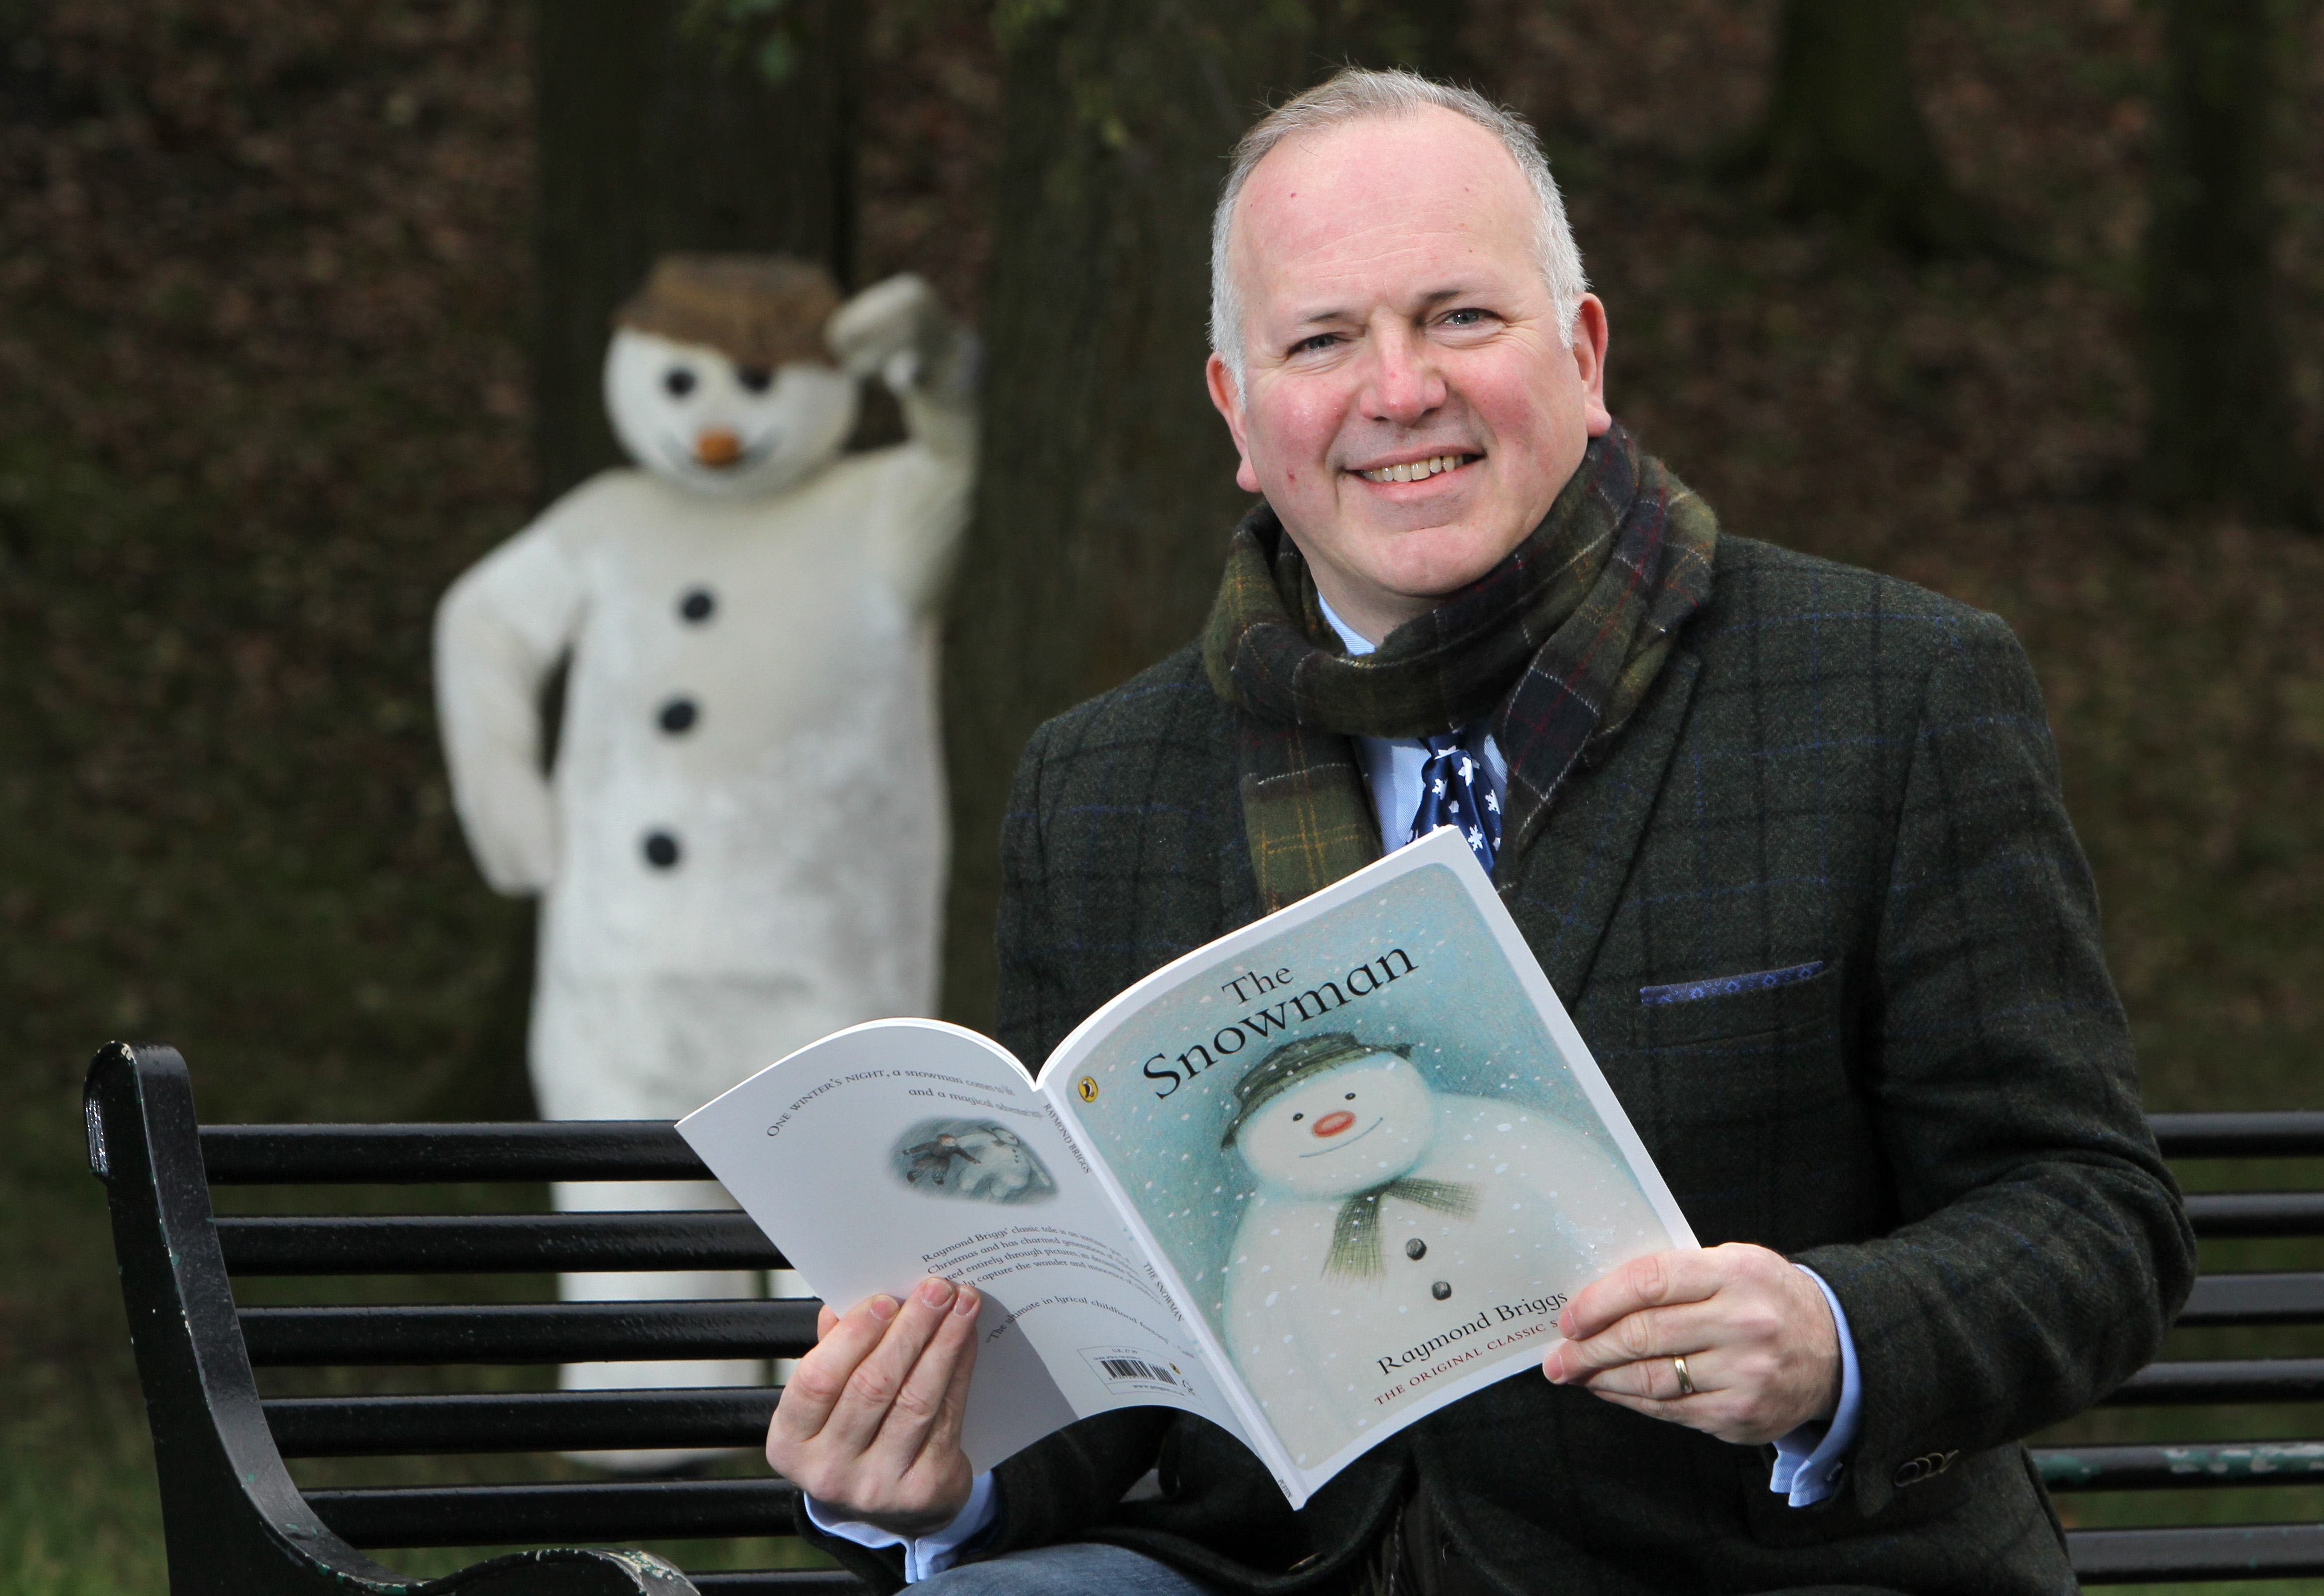 Jamie MacDougall, presenter of this year's RSNO Christmas concerts, with the Snowman.